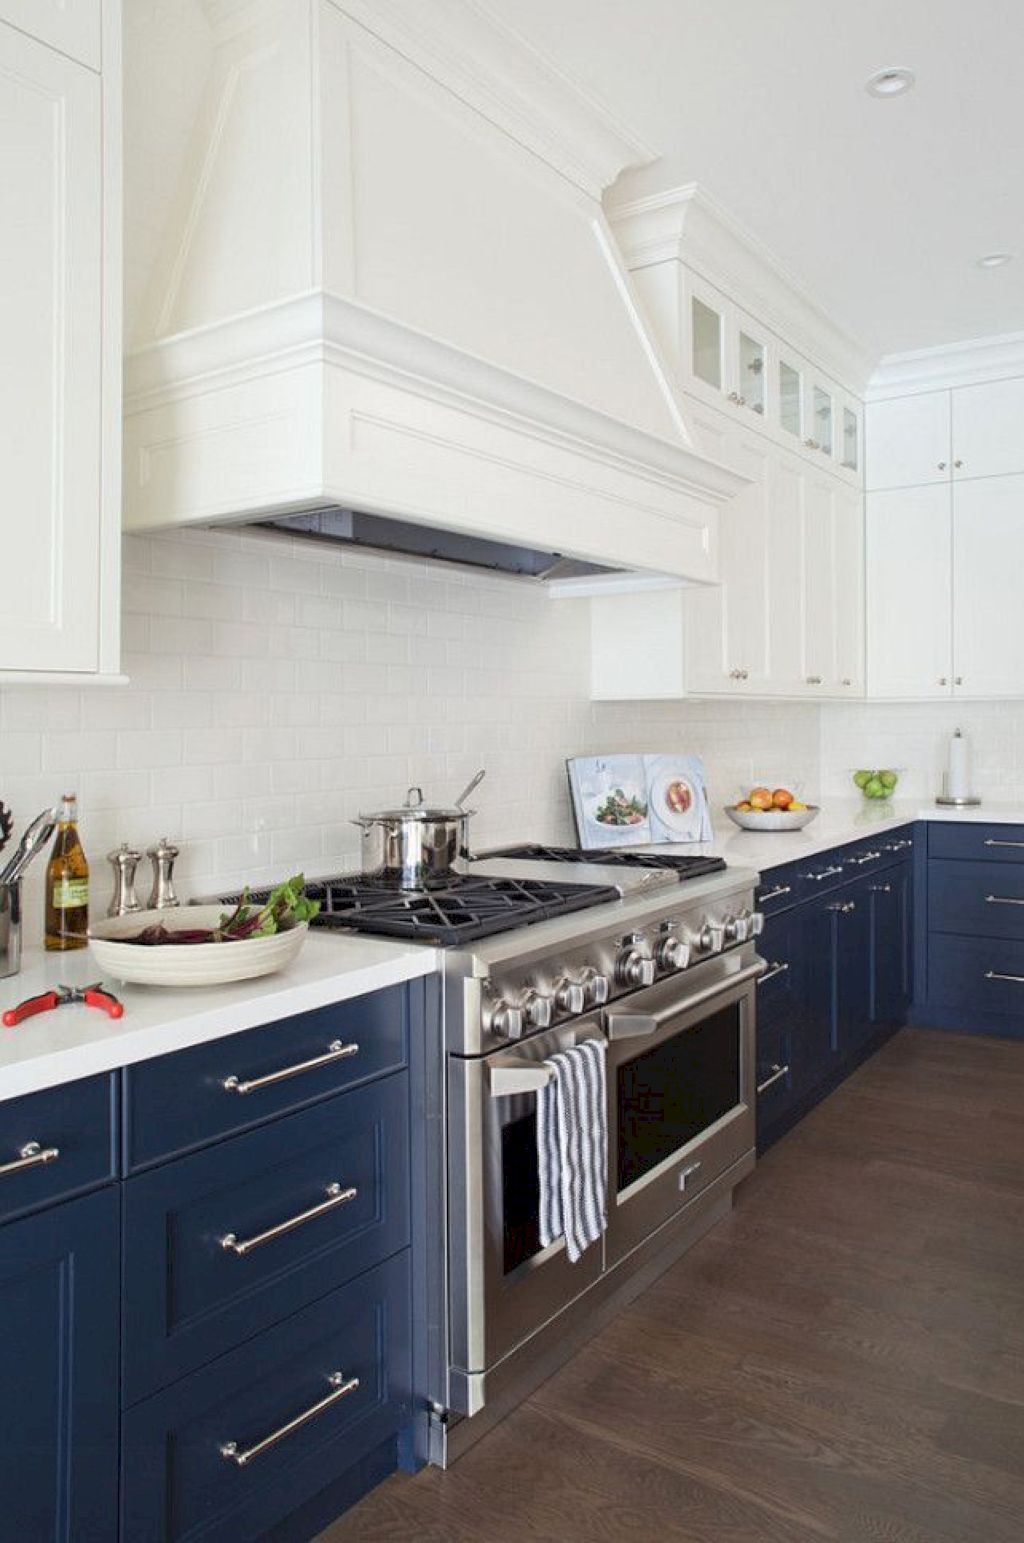 50 Awesome Coastal Kitchen Decor And Design Ideas  Kitchen Decor Pleasing Kitchen Cabinet Designs And Colors Decorating Inspiration